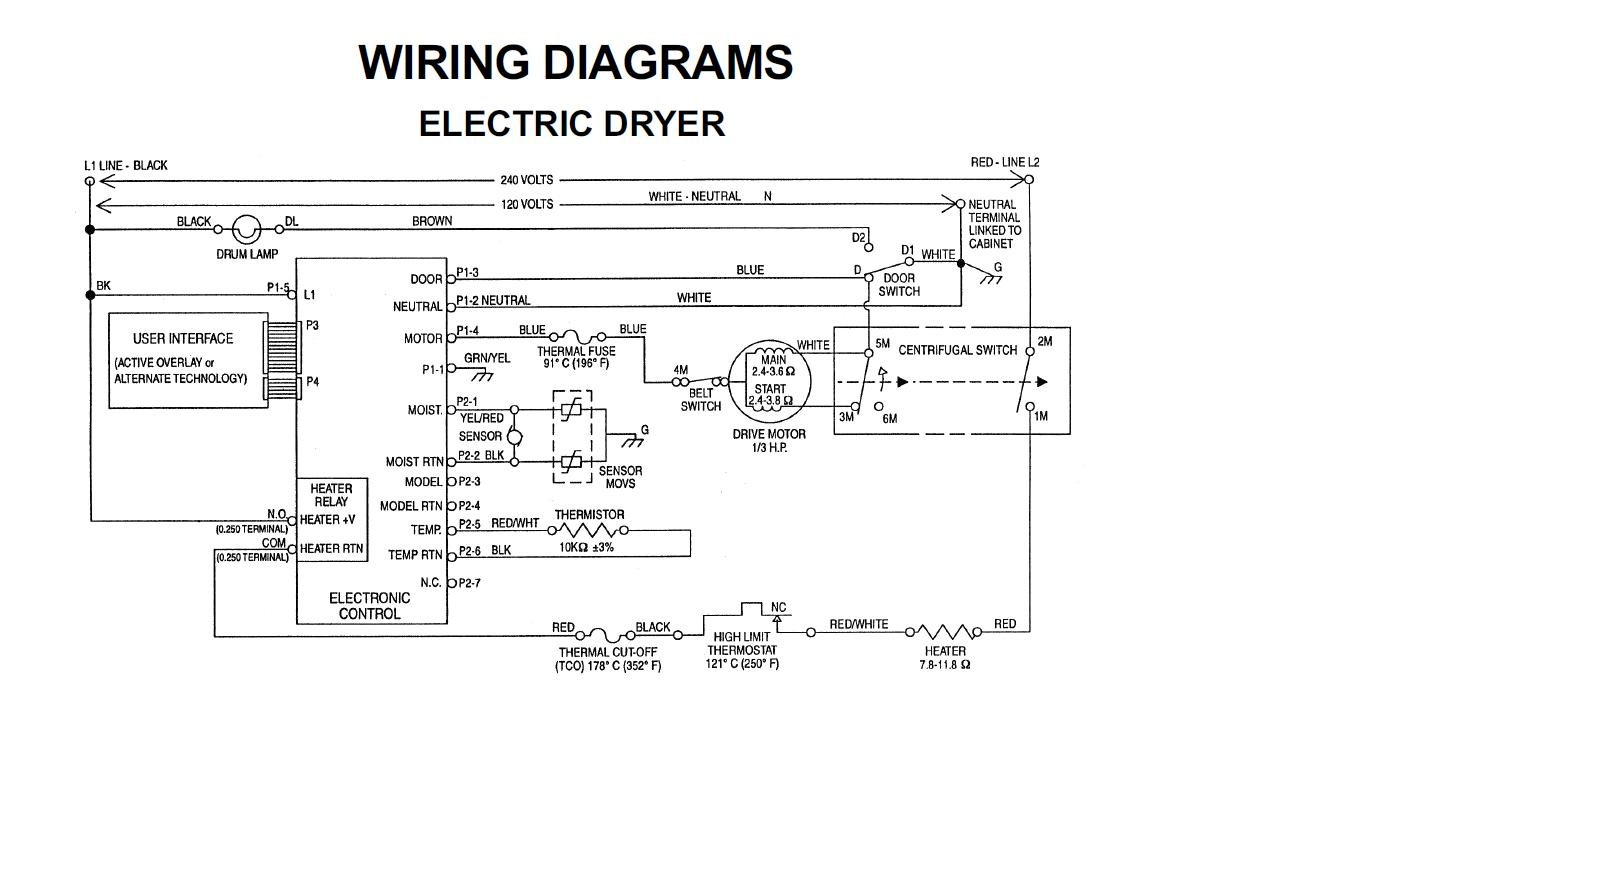 whirlpool dryer electrical schematic i have whirlpool front loader dryer gew9250pw0 need to ...